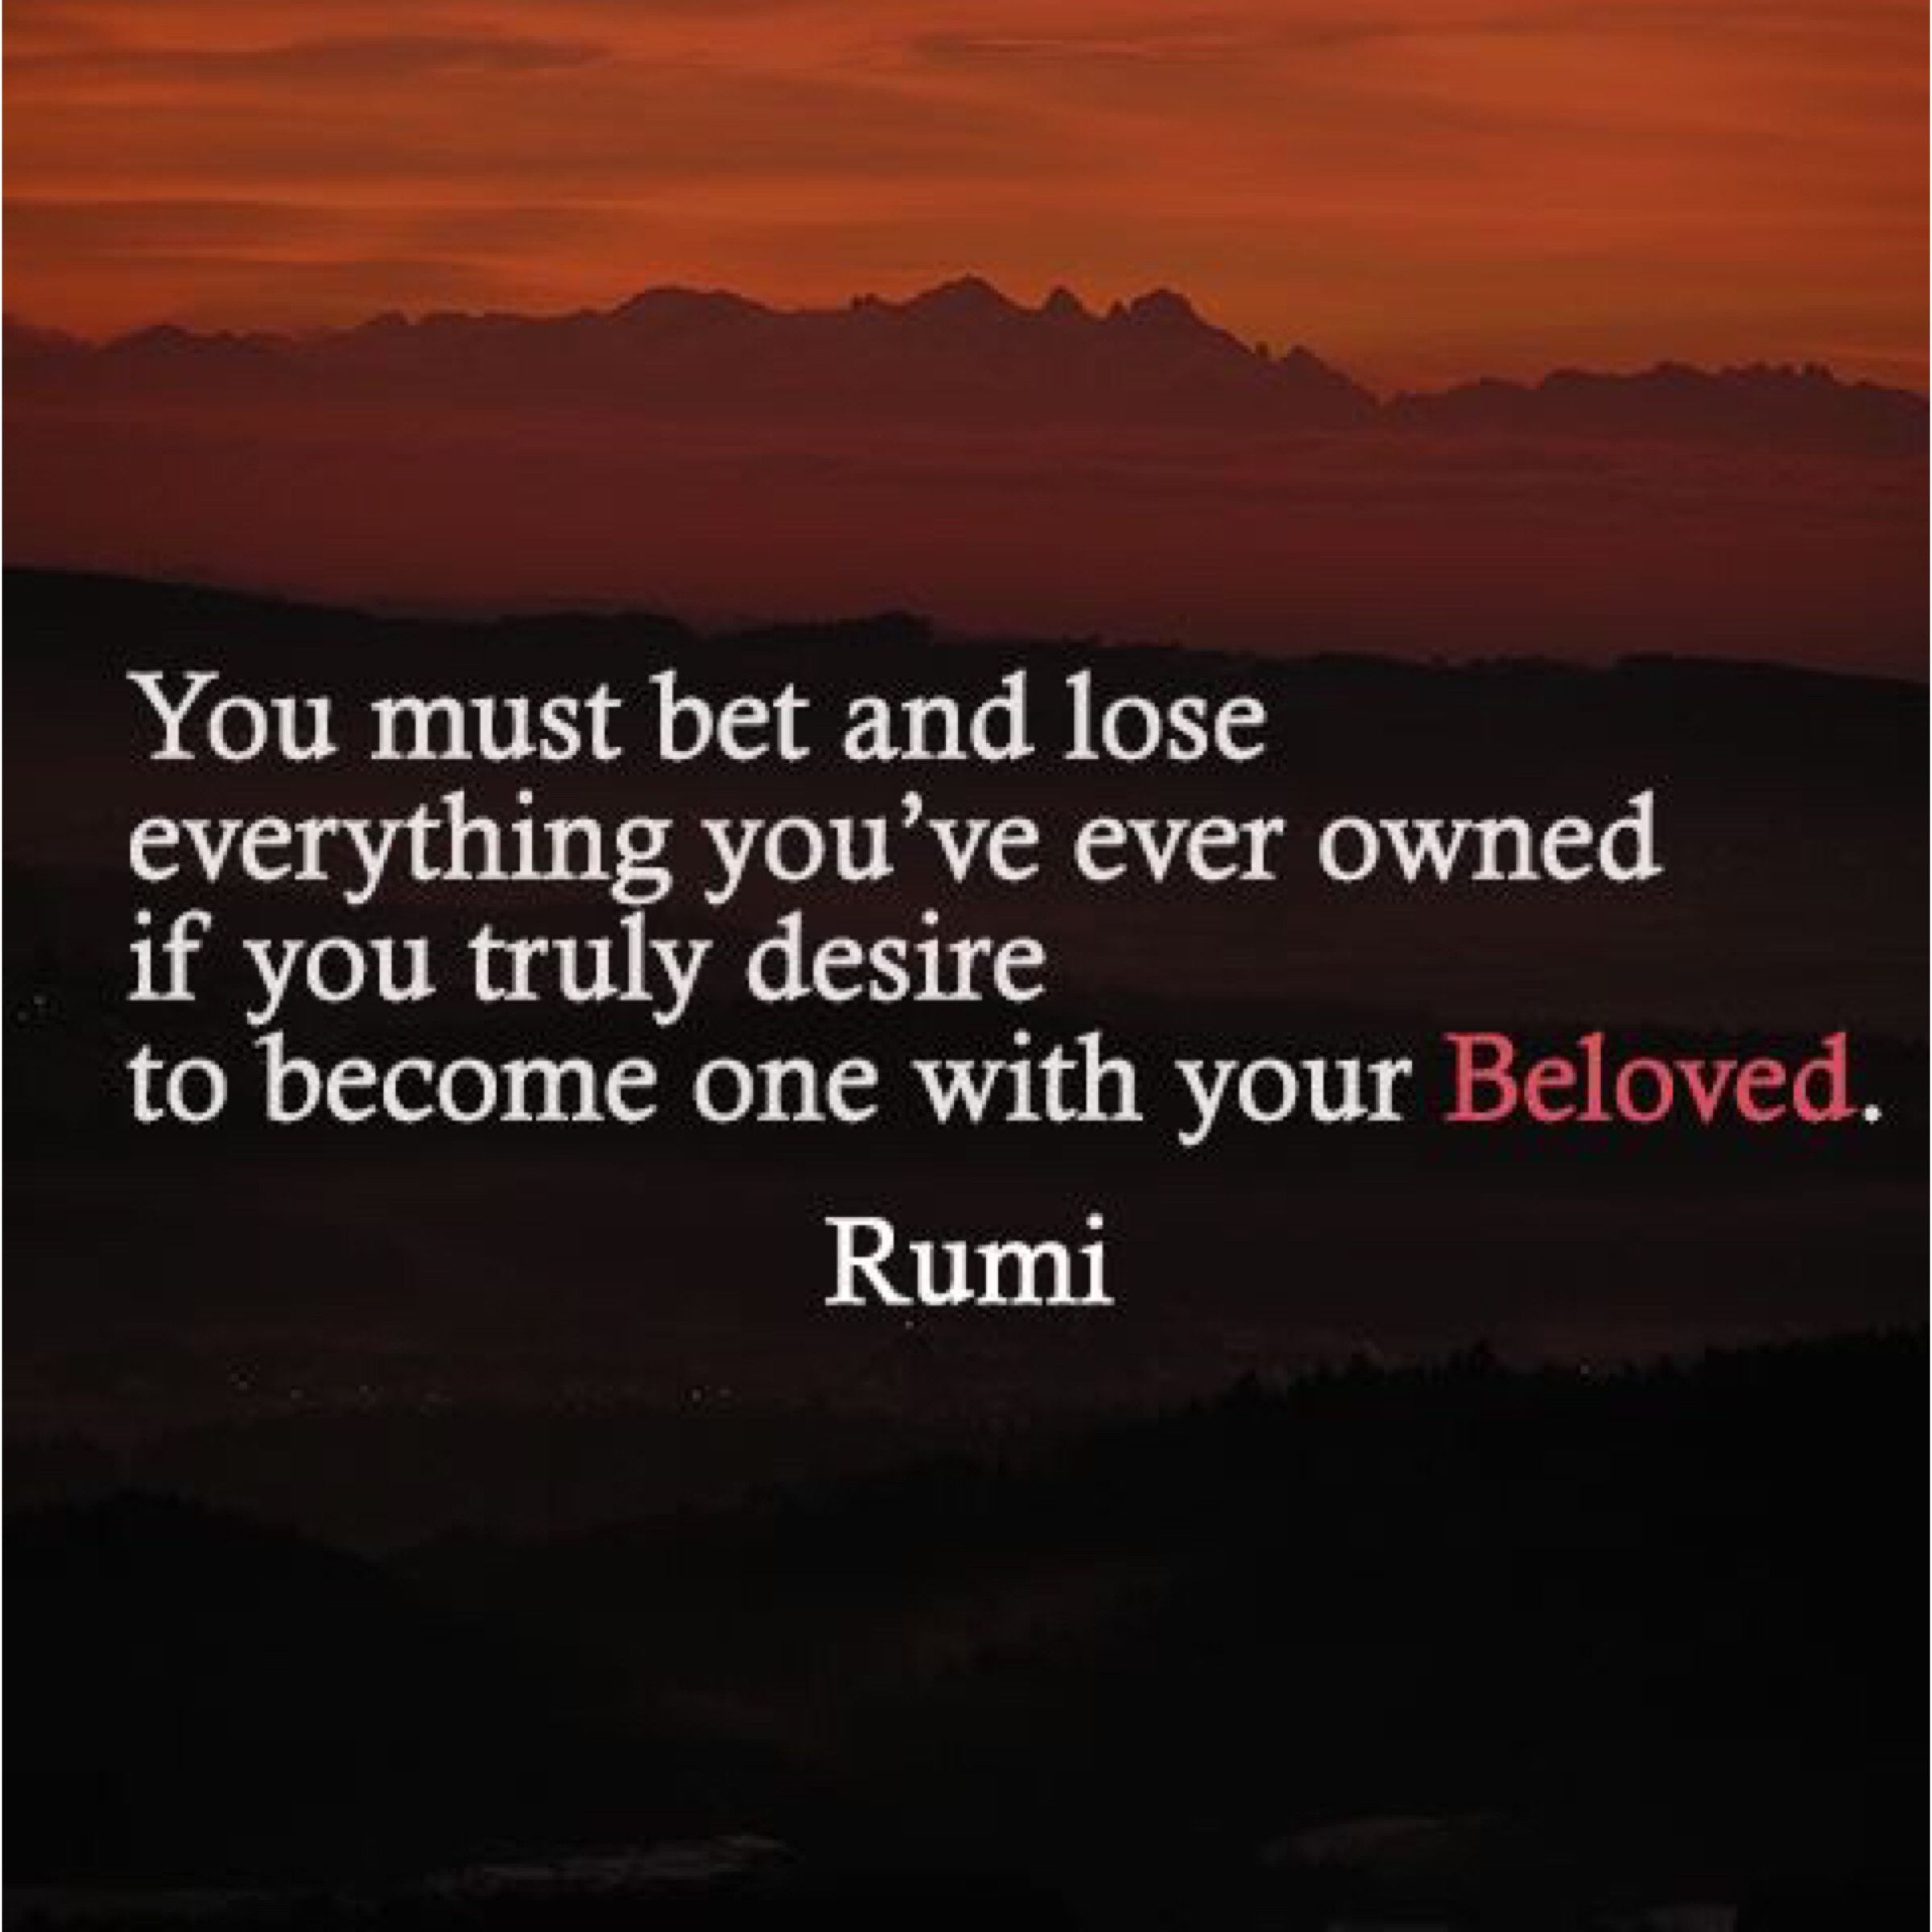 Philosophy In Life Quotes Pinzahra Bagheri On Rumi Quotes  Pinterest  Rumi Quotes